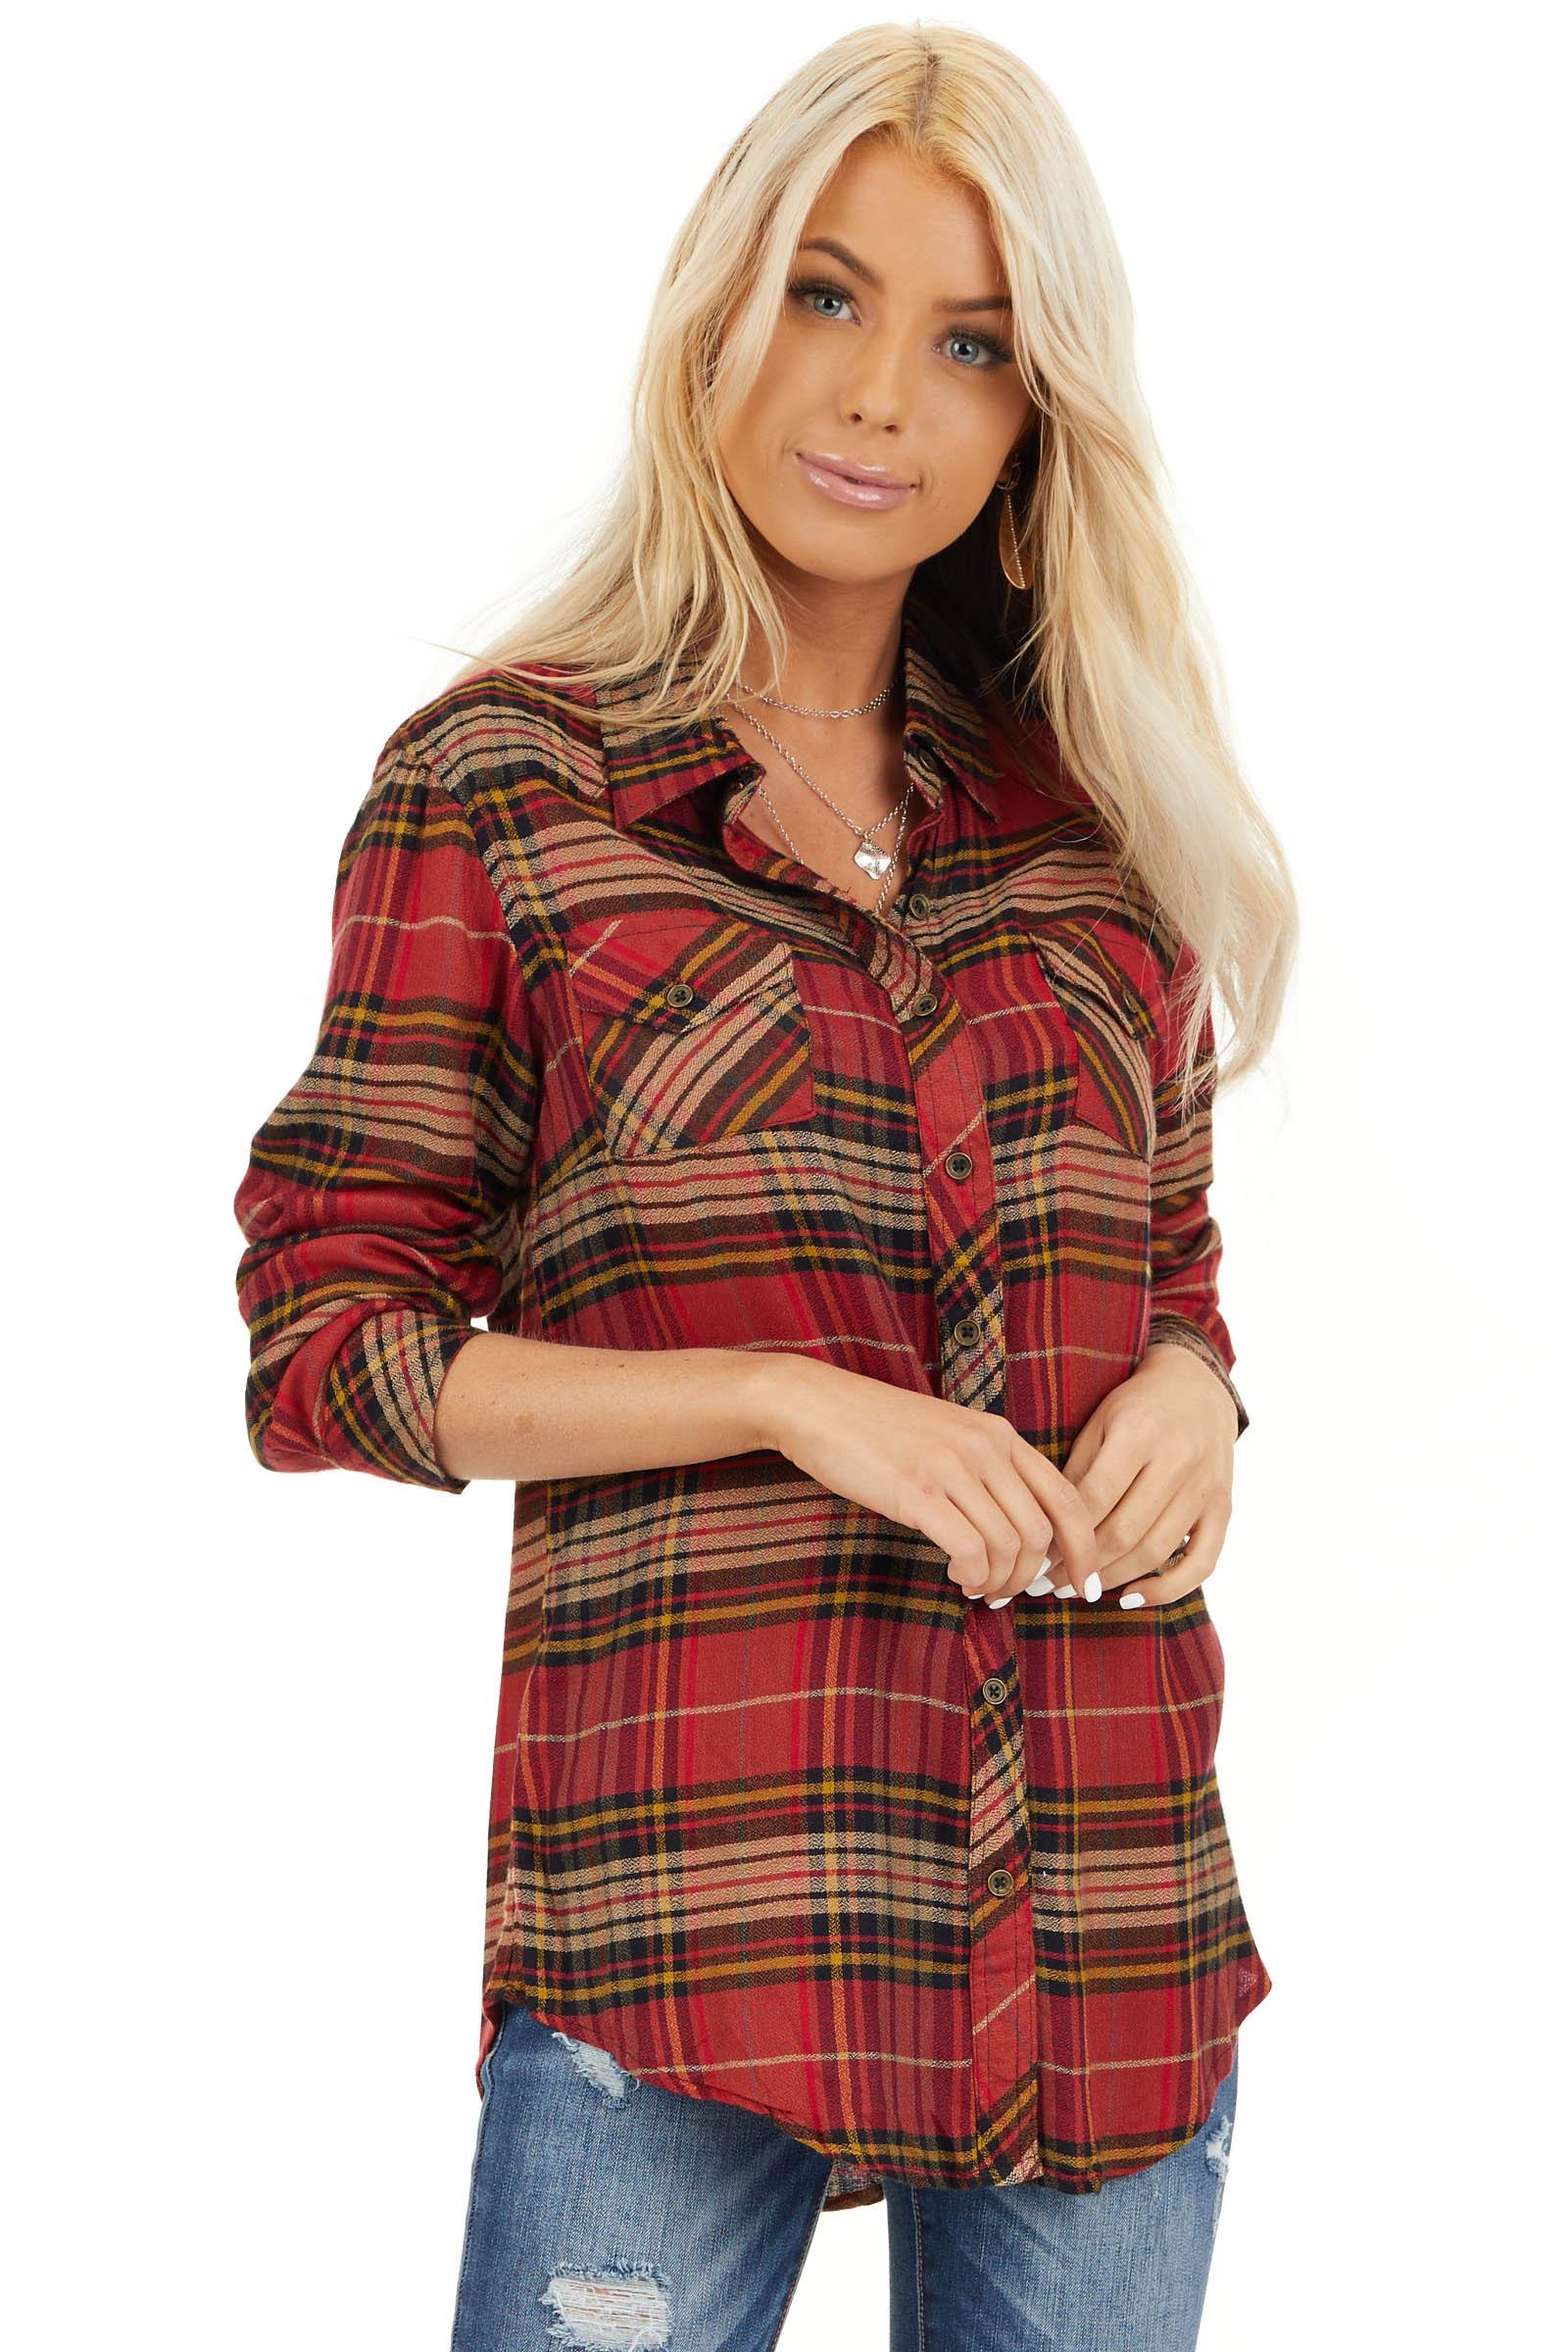 Candy Apple Red Plaid Button Up Top with Chest Pocket front close up